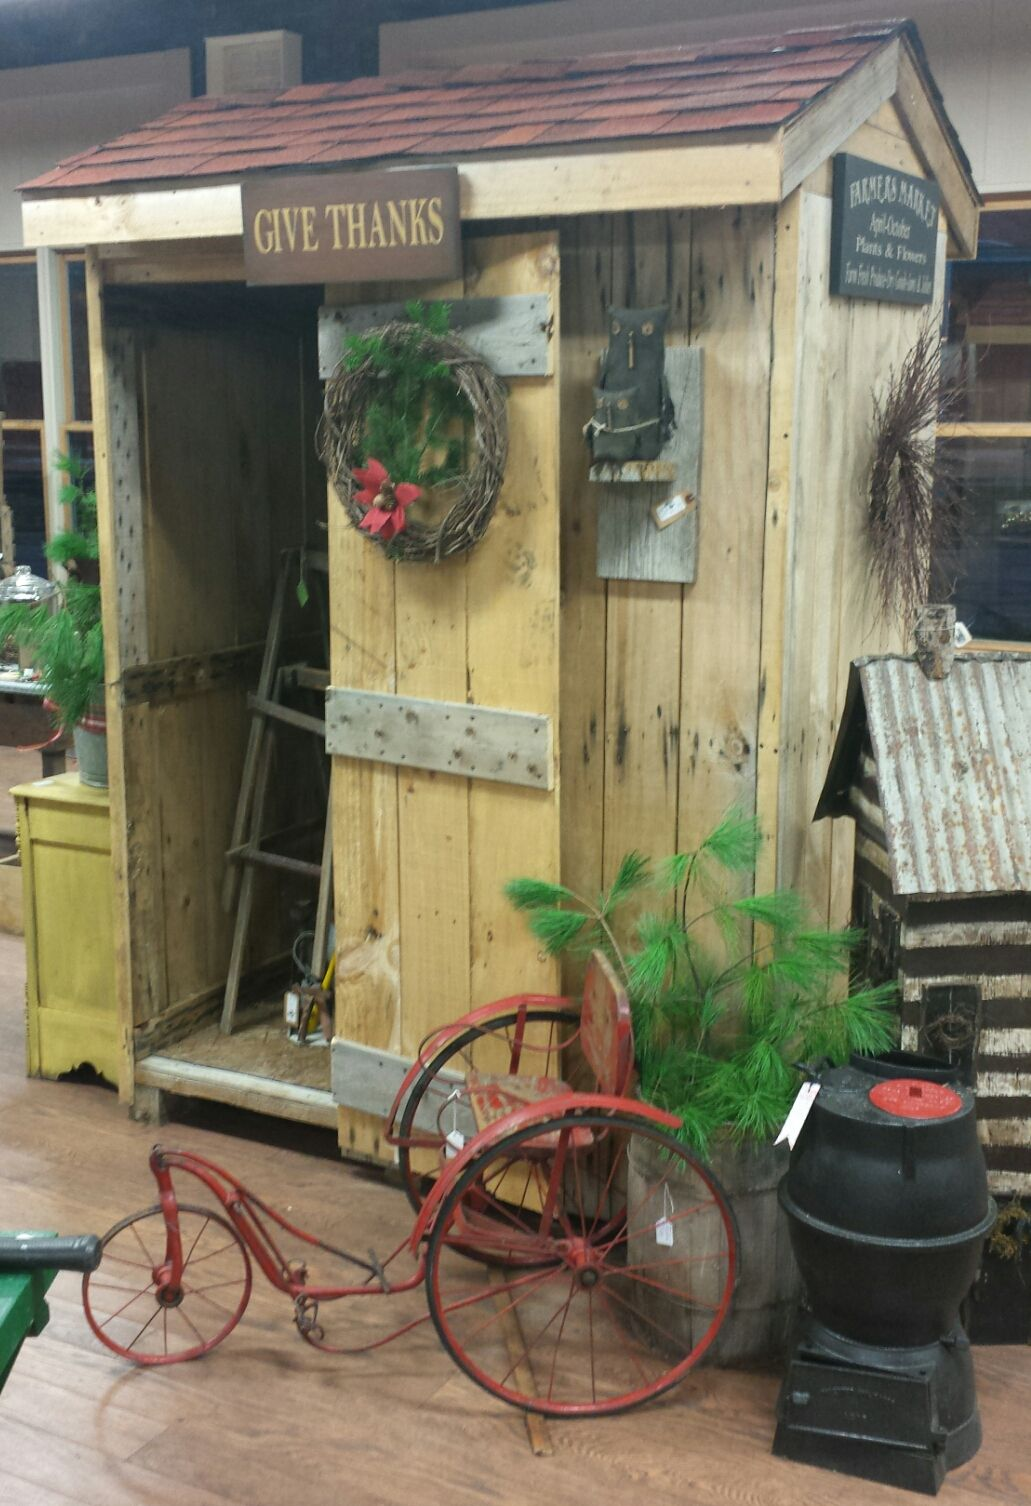 primitive garden shed available at antique mercantile jackson michigan 850